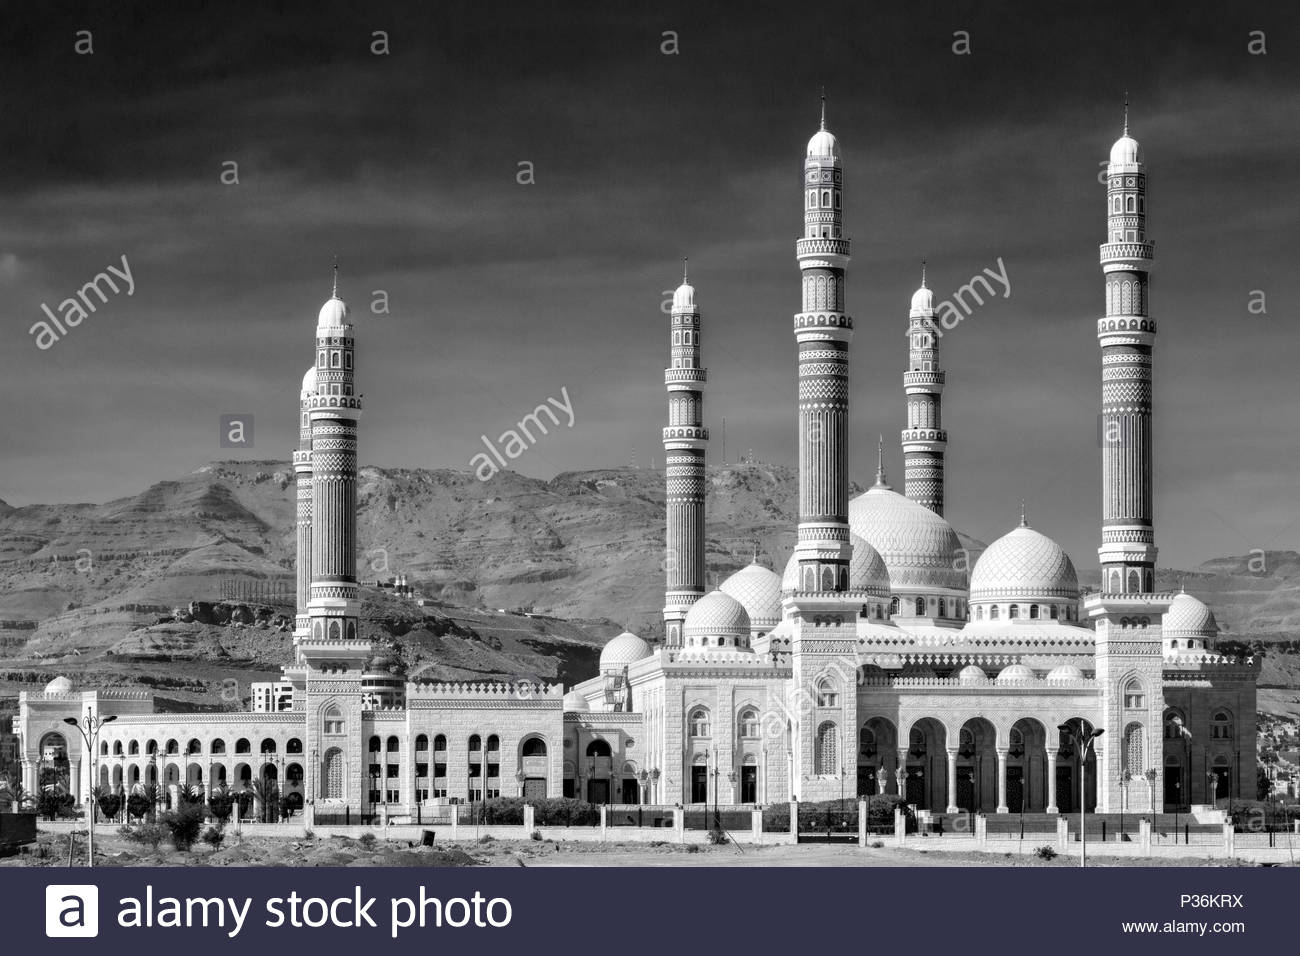 Al Saleh Mosque with mountains in the background - Stock Image